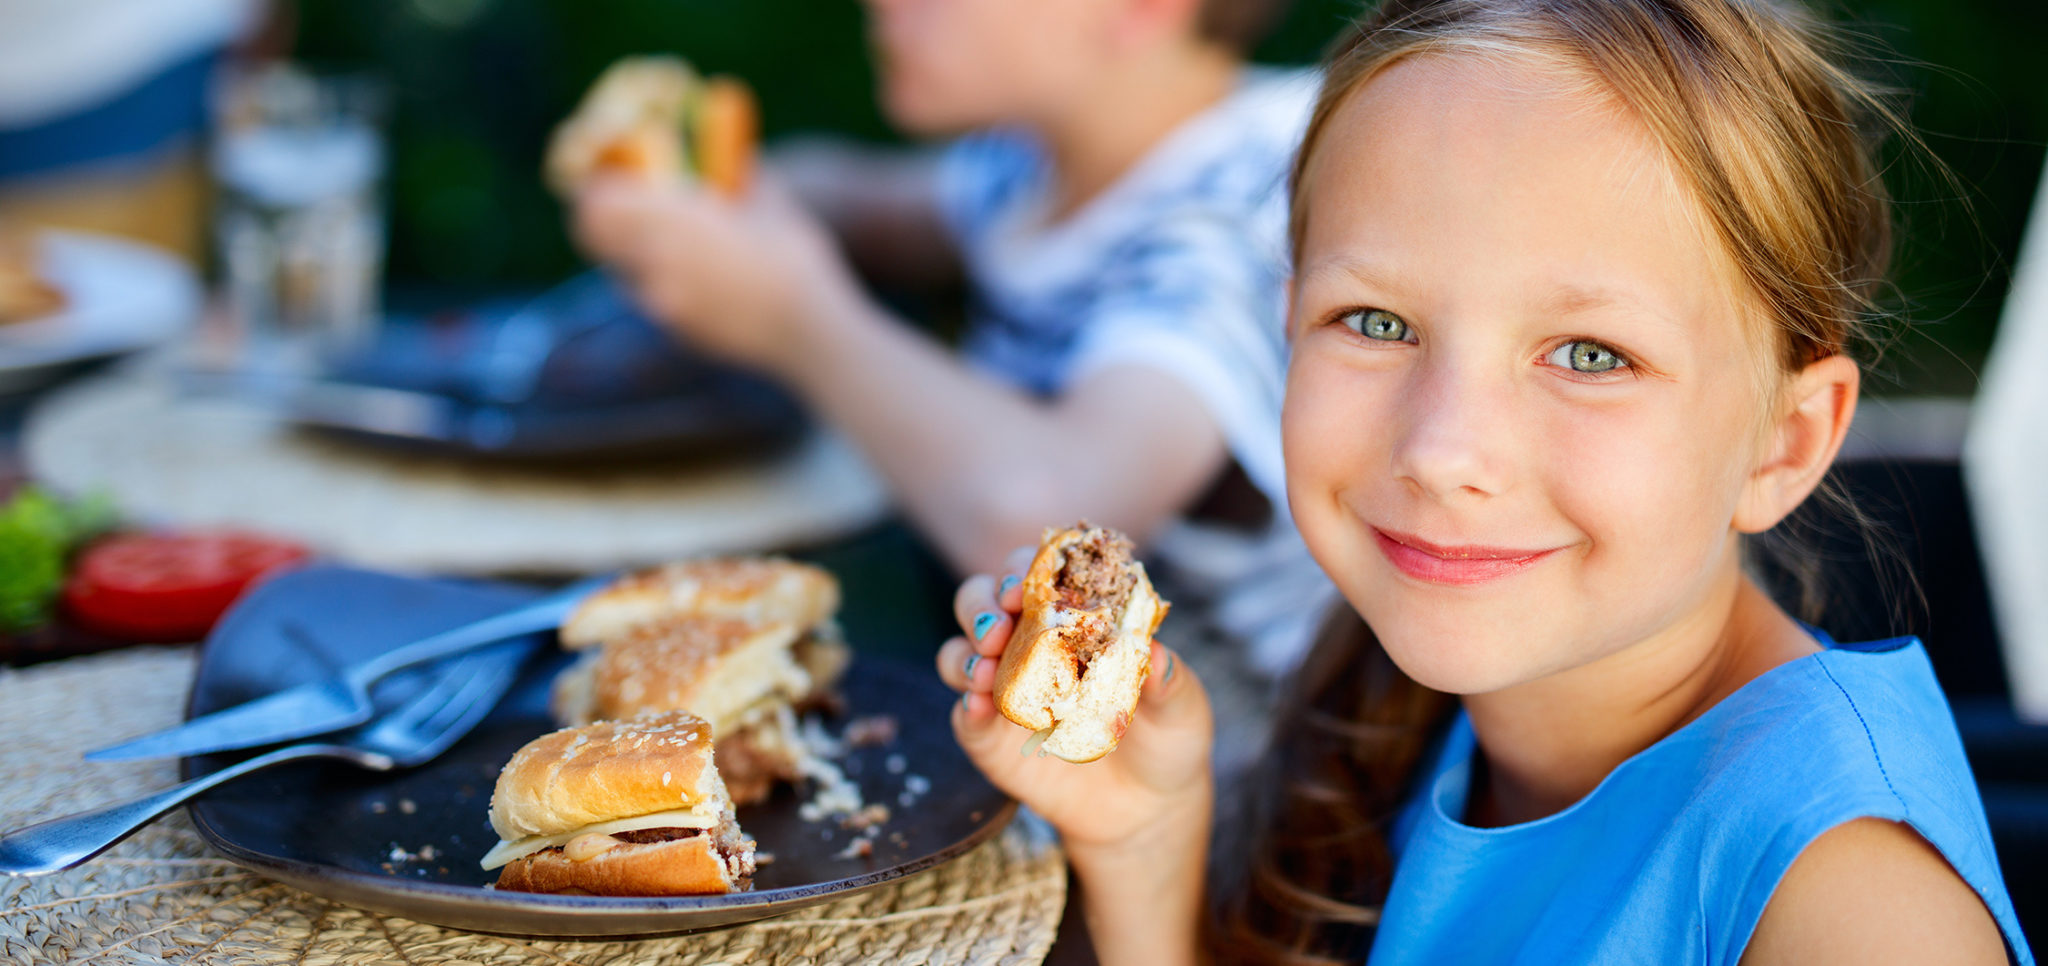 Little girl eating burger